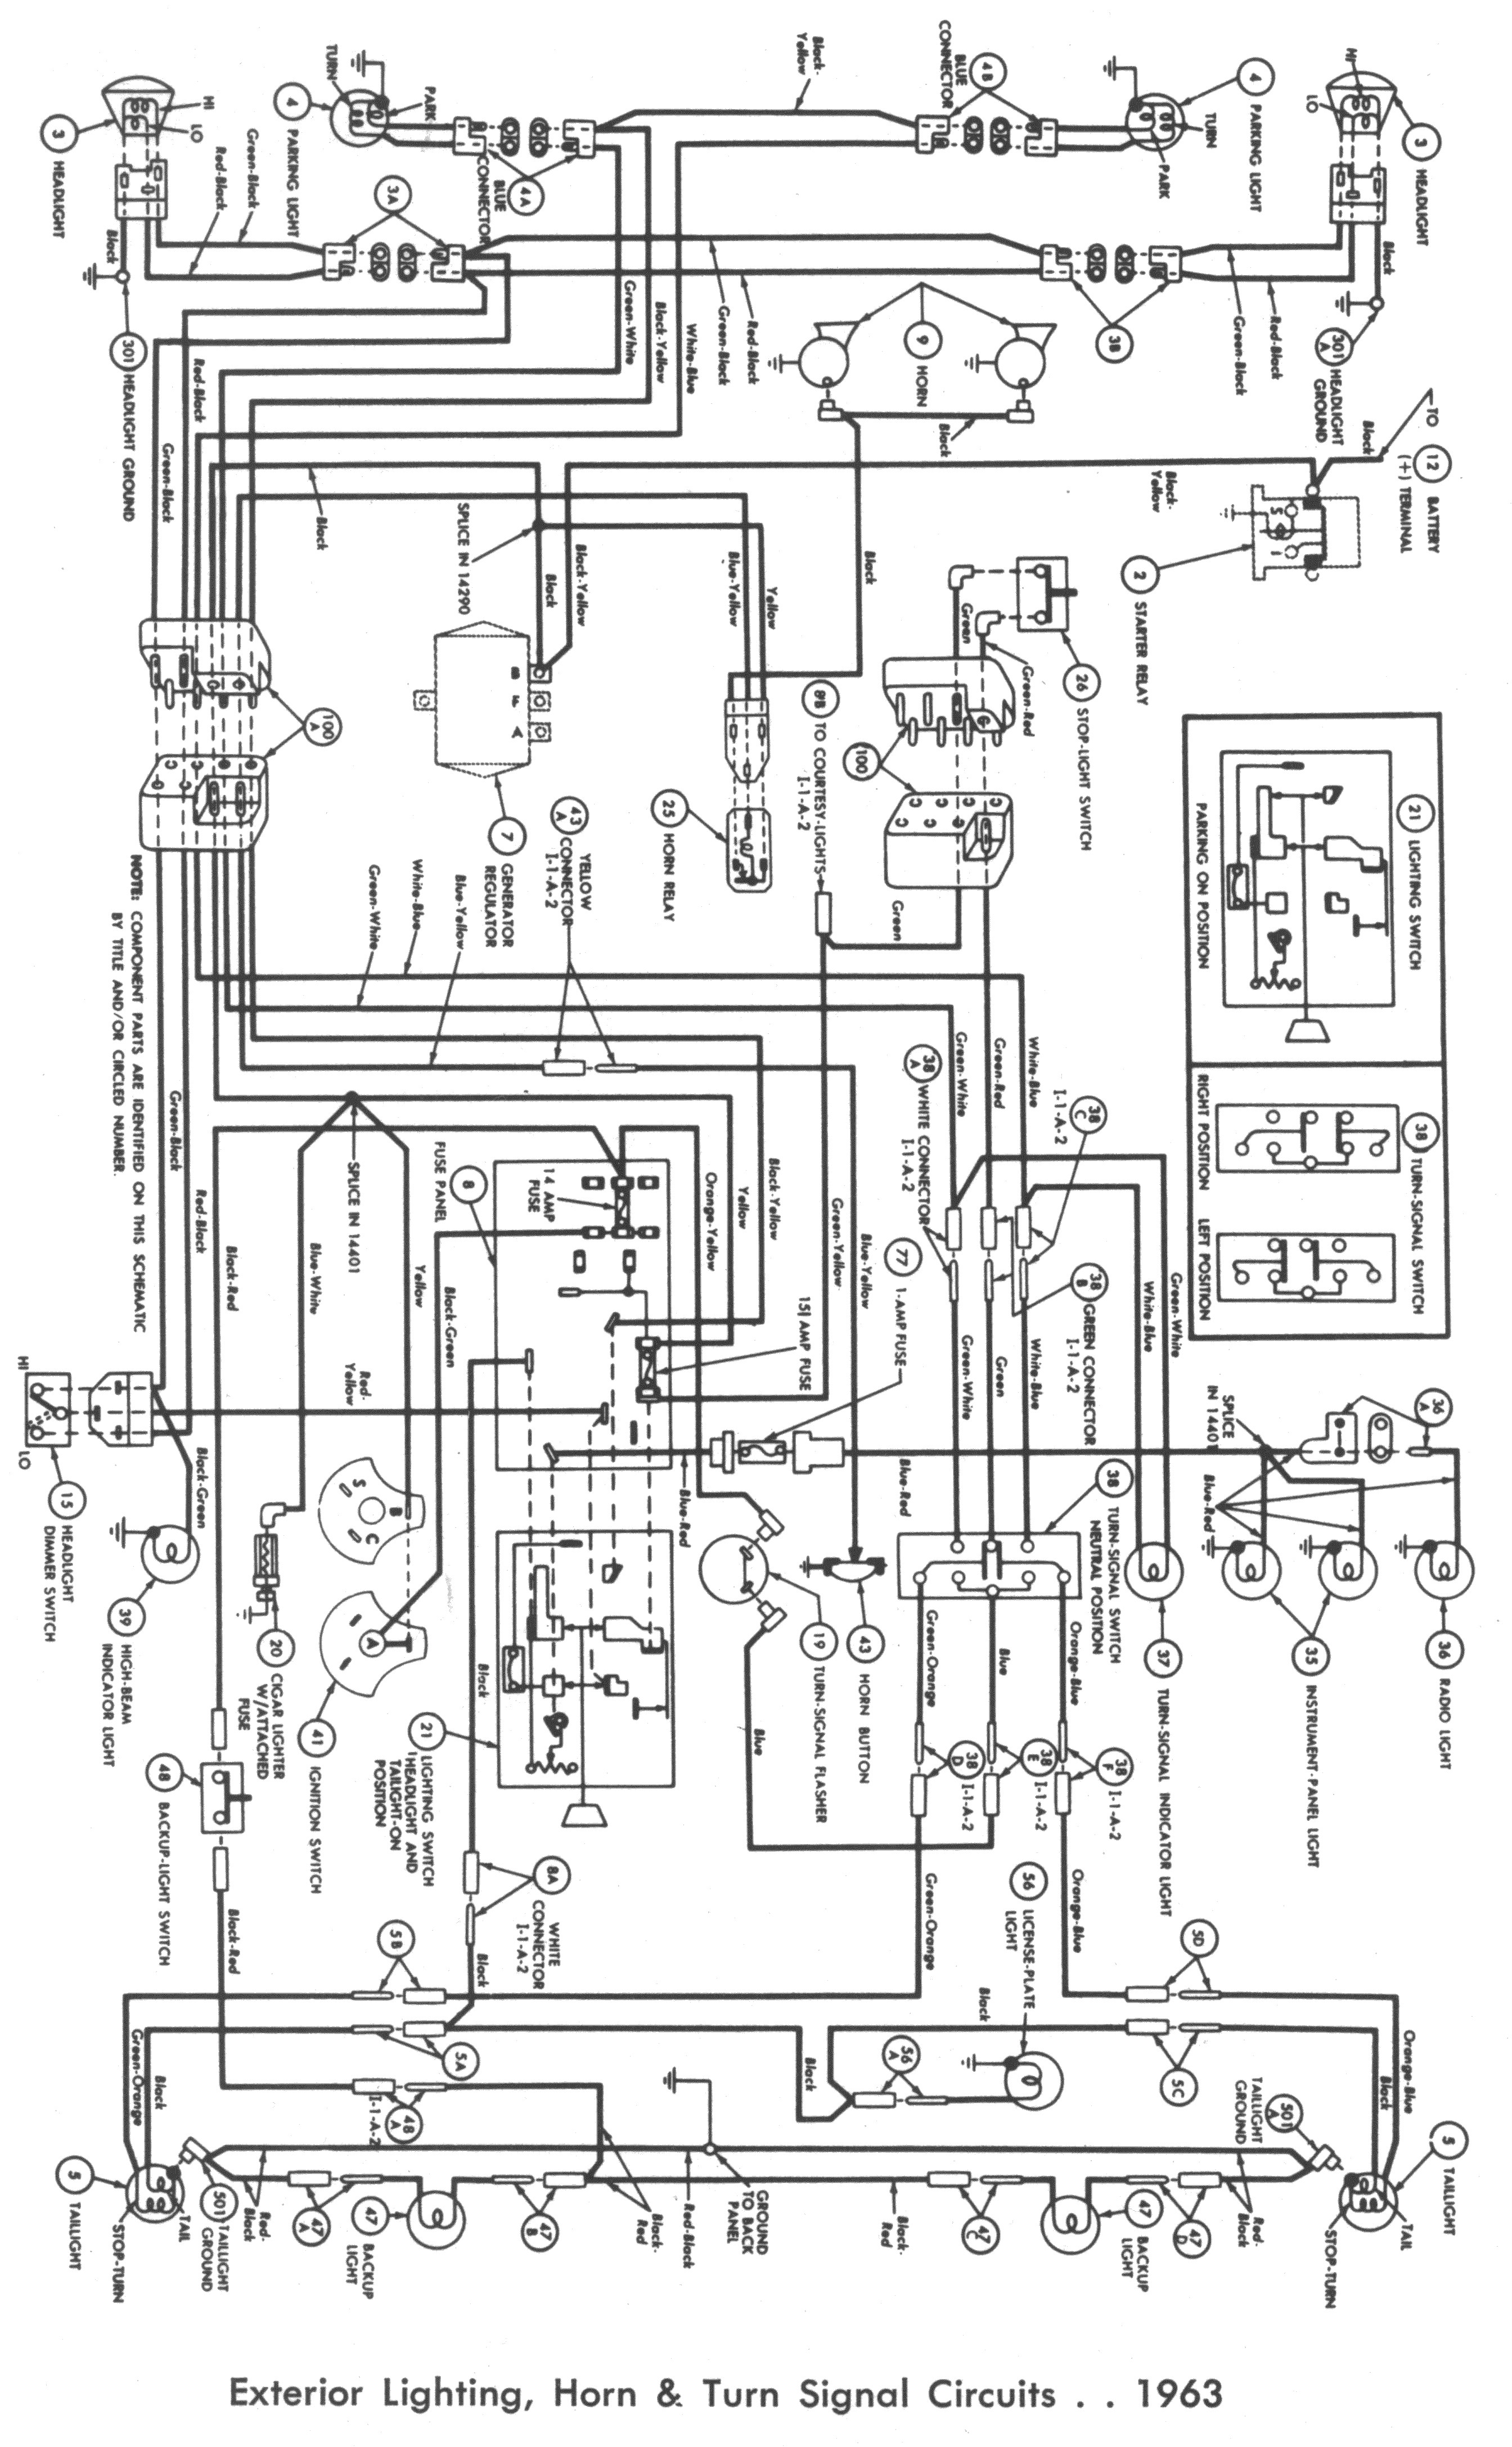 Wiring 61 62 144La falcon wiring diagrams 1964 ford falcon wiring diagram at suagrazia.org